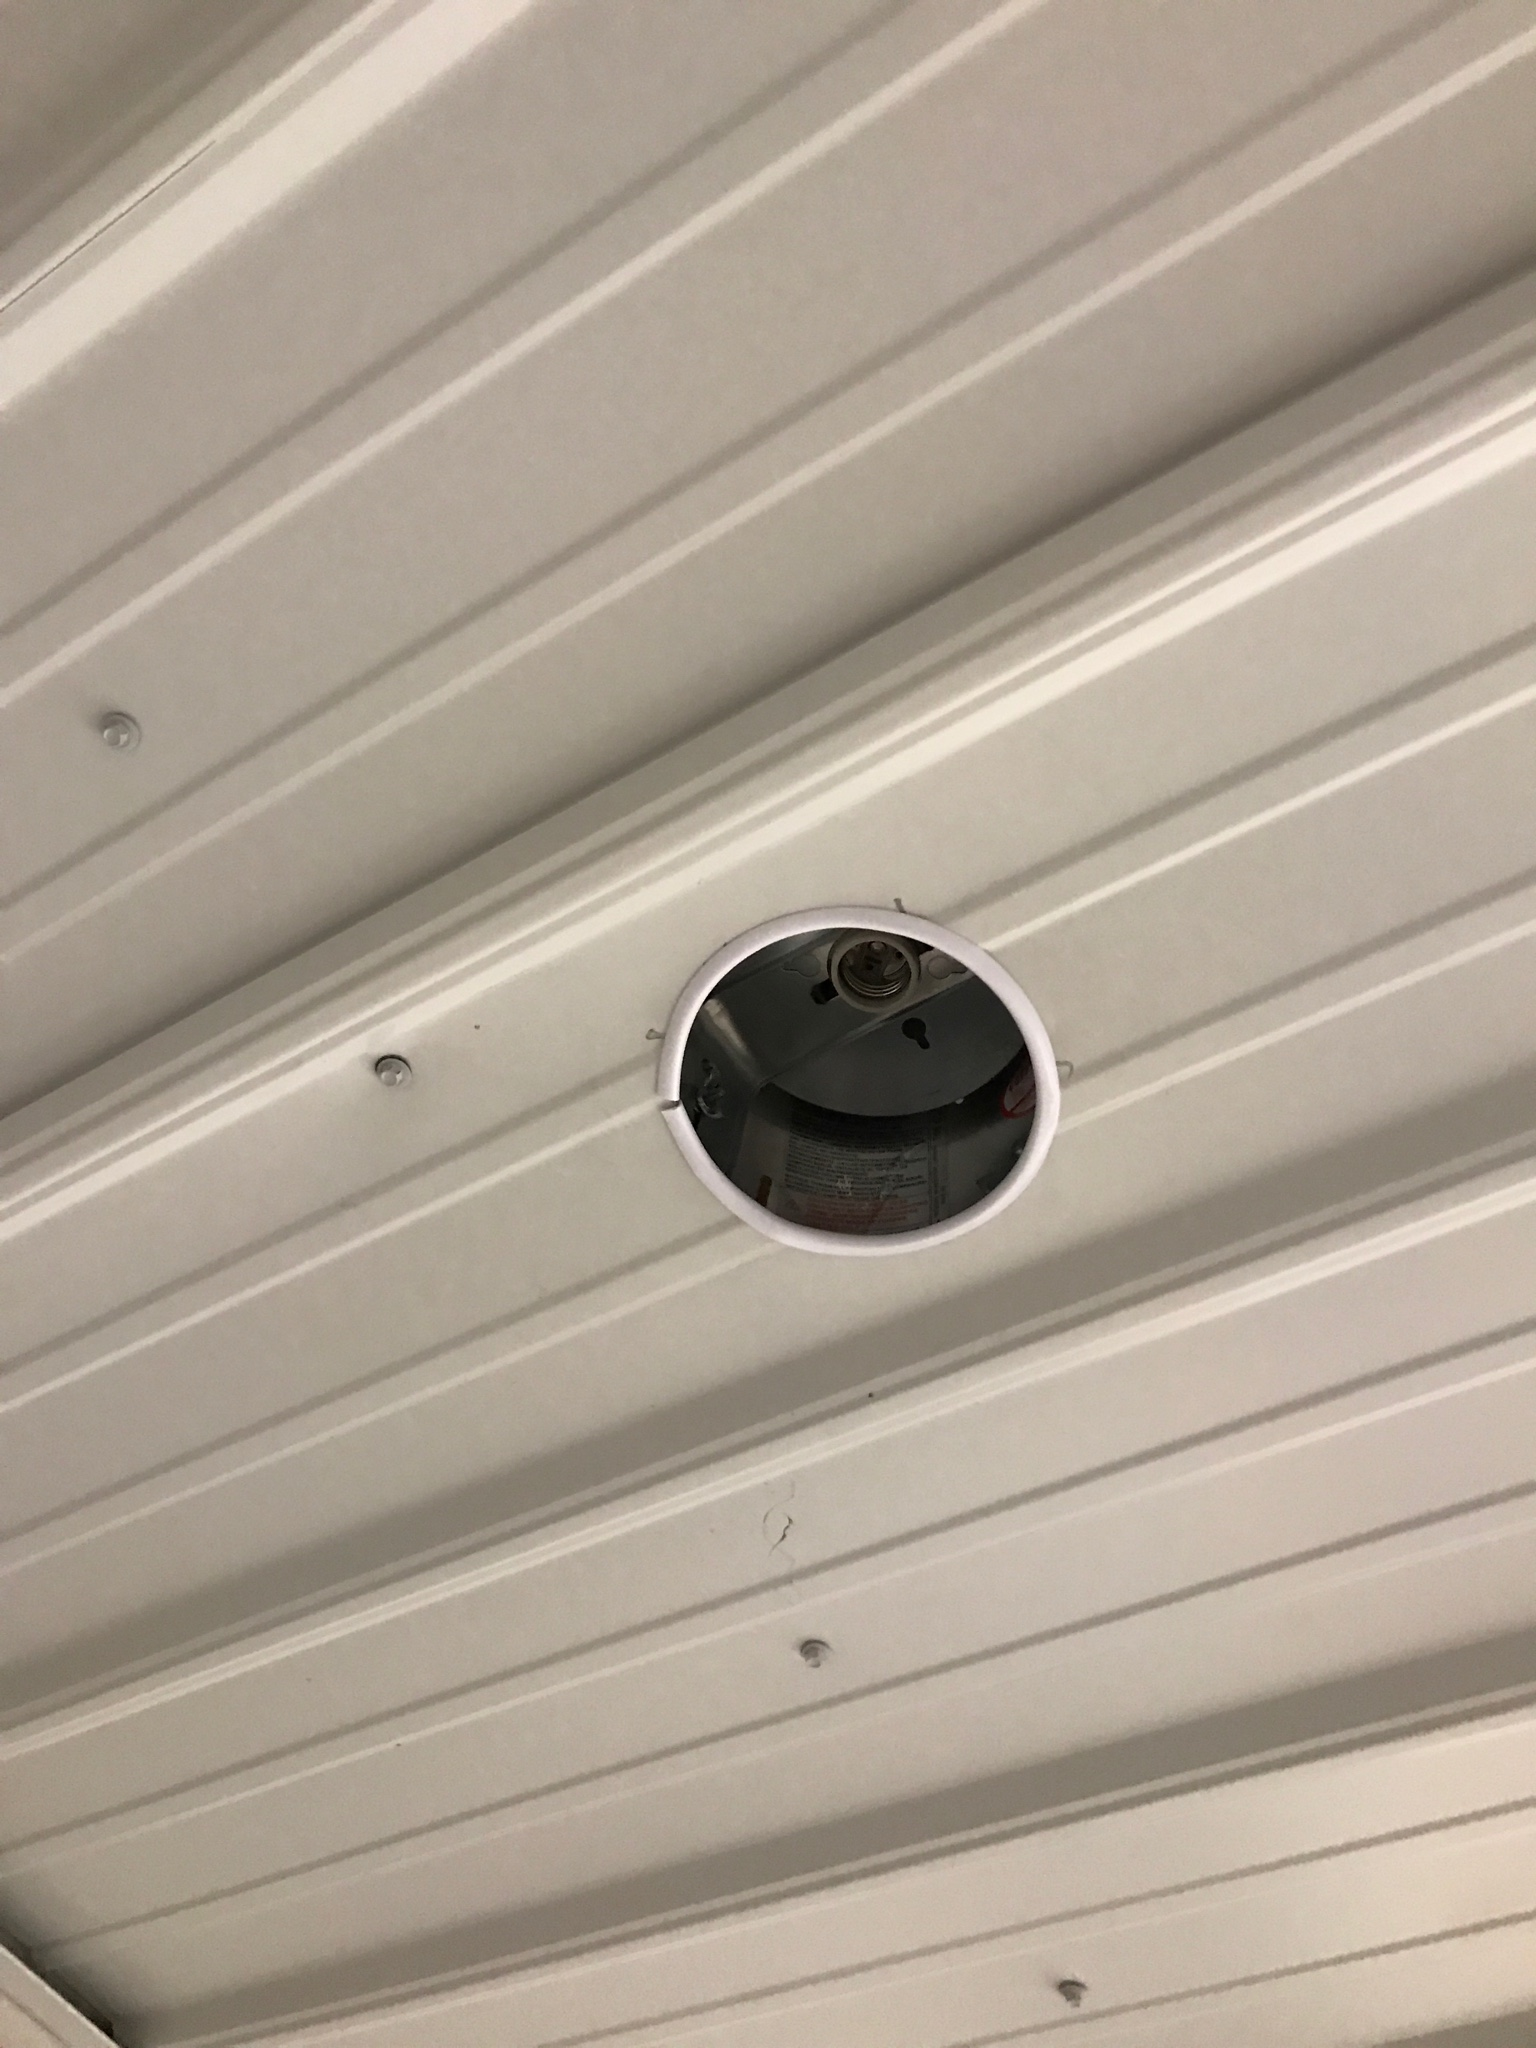 Metal Roofing For Ceilings Archive The Garage Journal Board Steel Building Wiring Idea